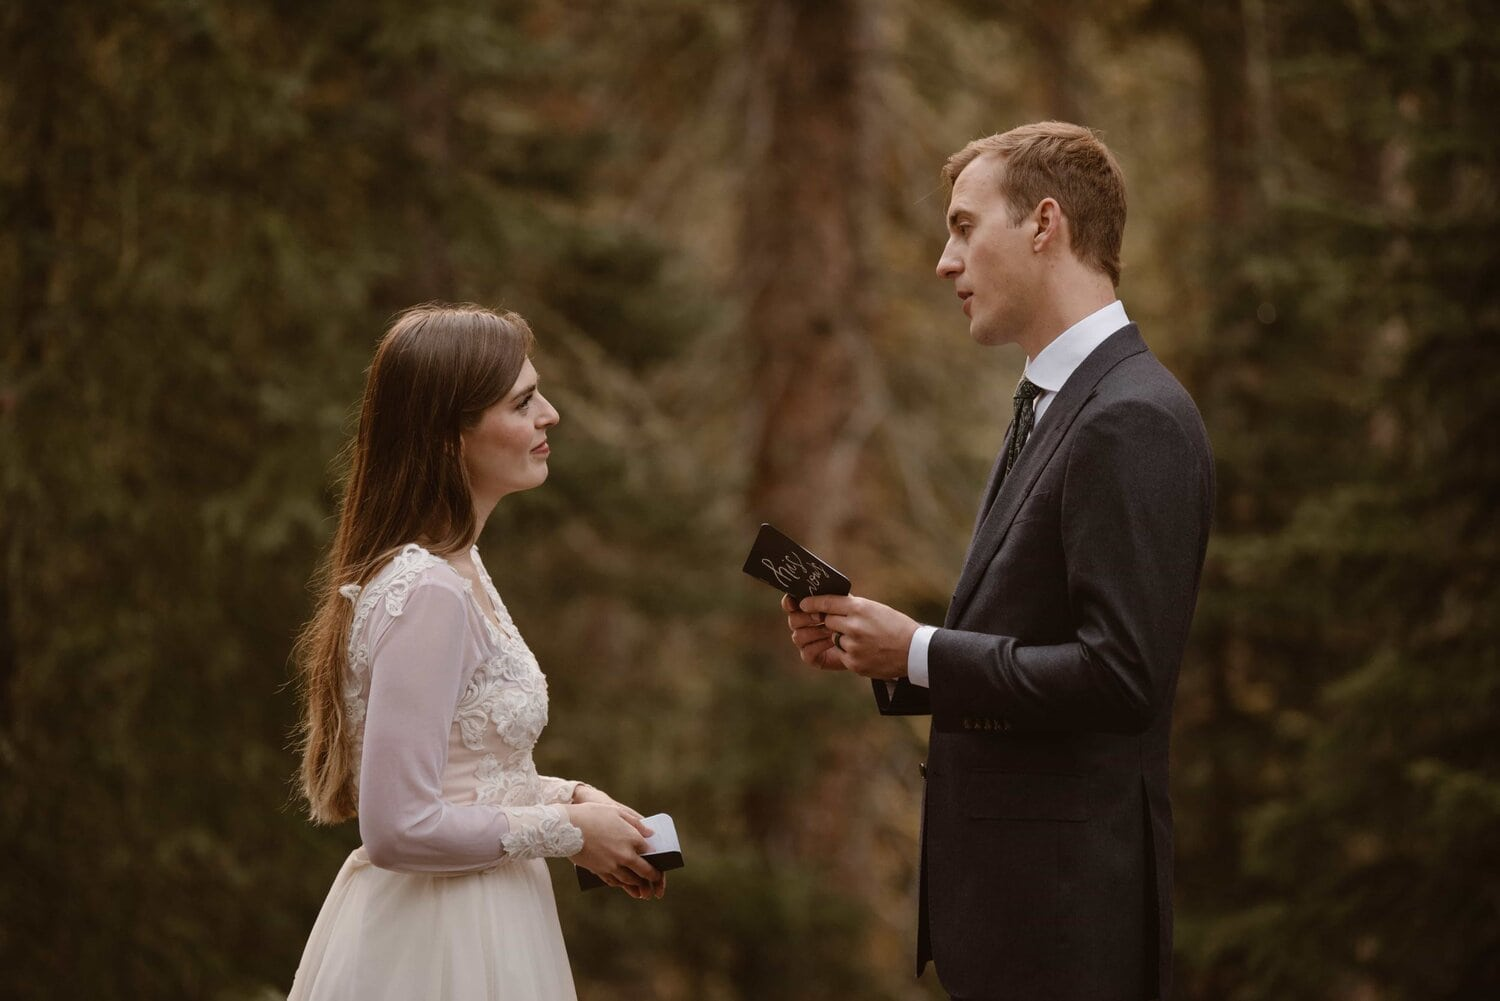 Bride and groom exchange vows in a forest during their wedding ceremony.